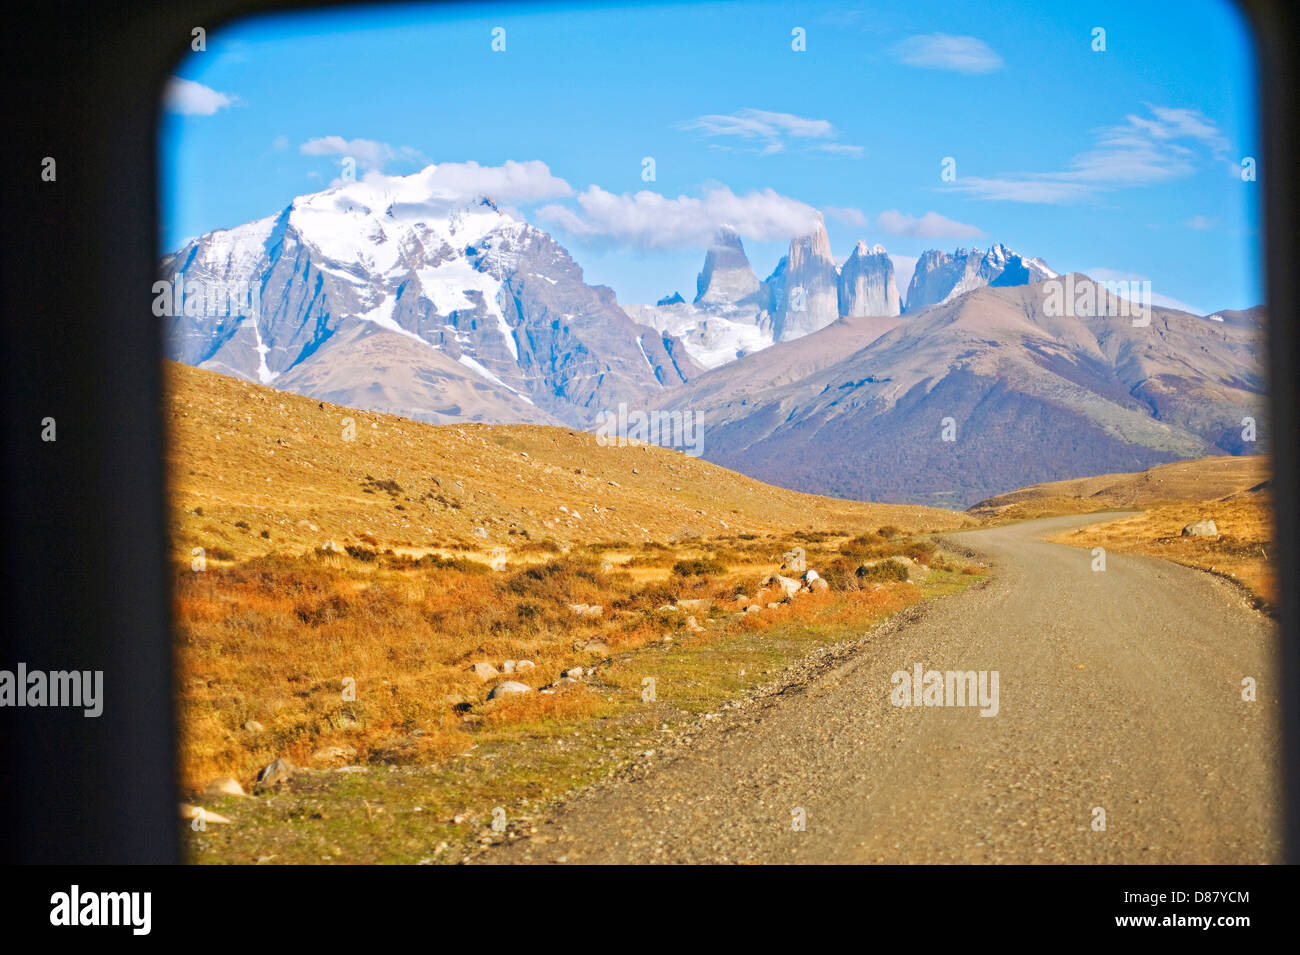 Torres del Paine National Park, Chile viewed from the back of a tour van - Stock Image